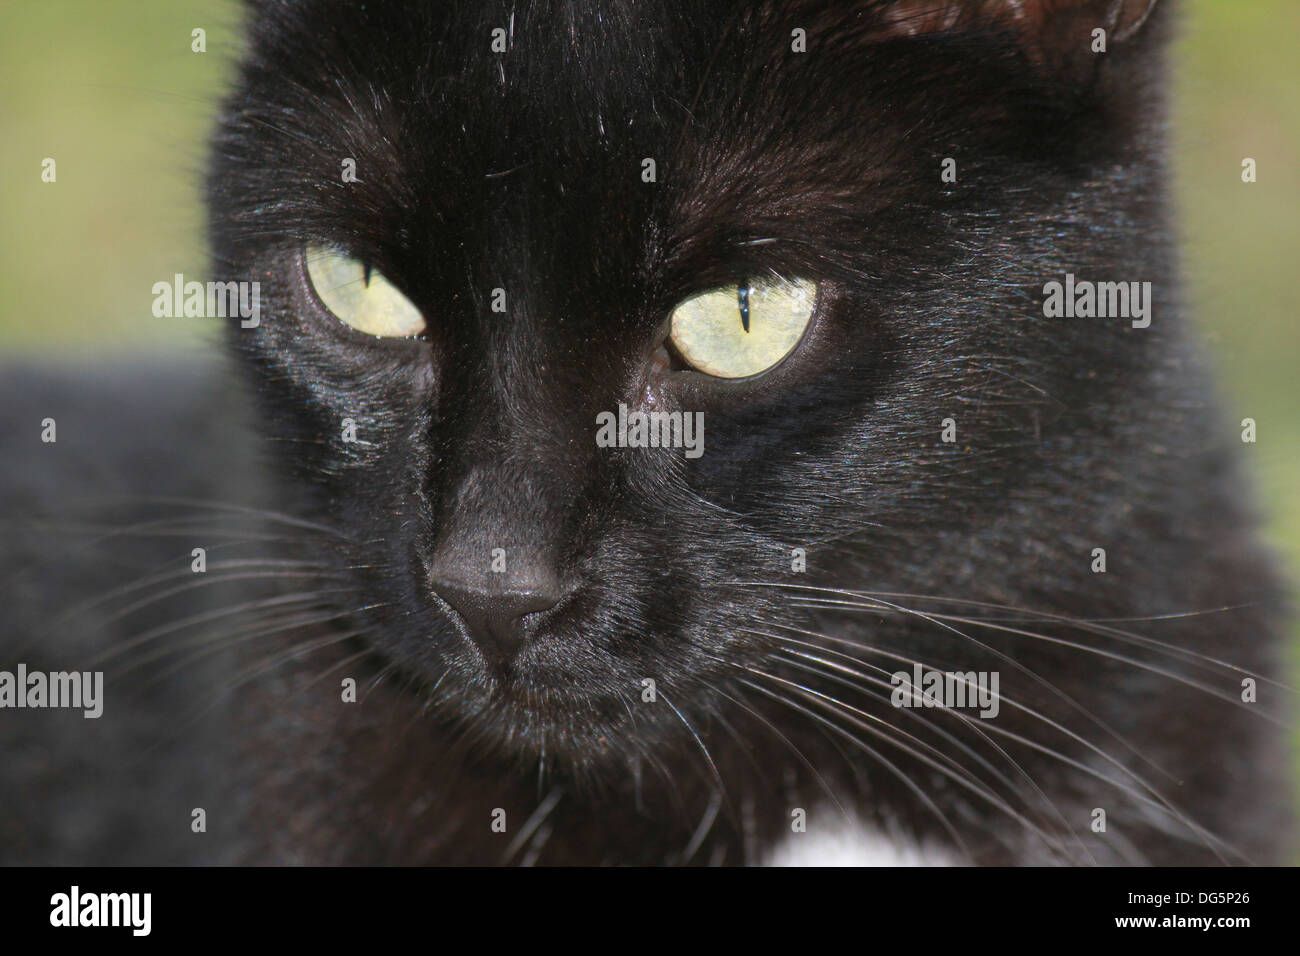 Close-up of black cat with yellow eyes - Stock Image